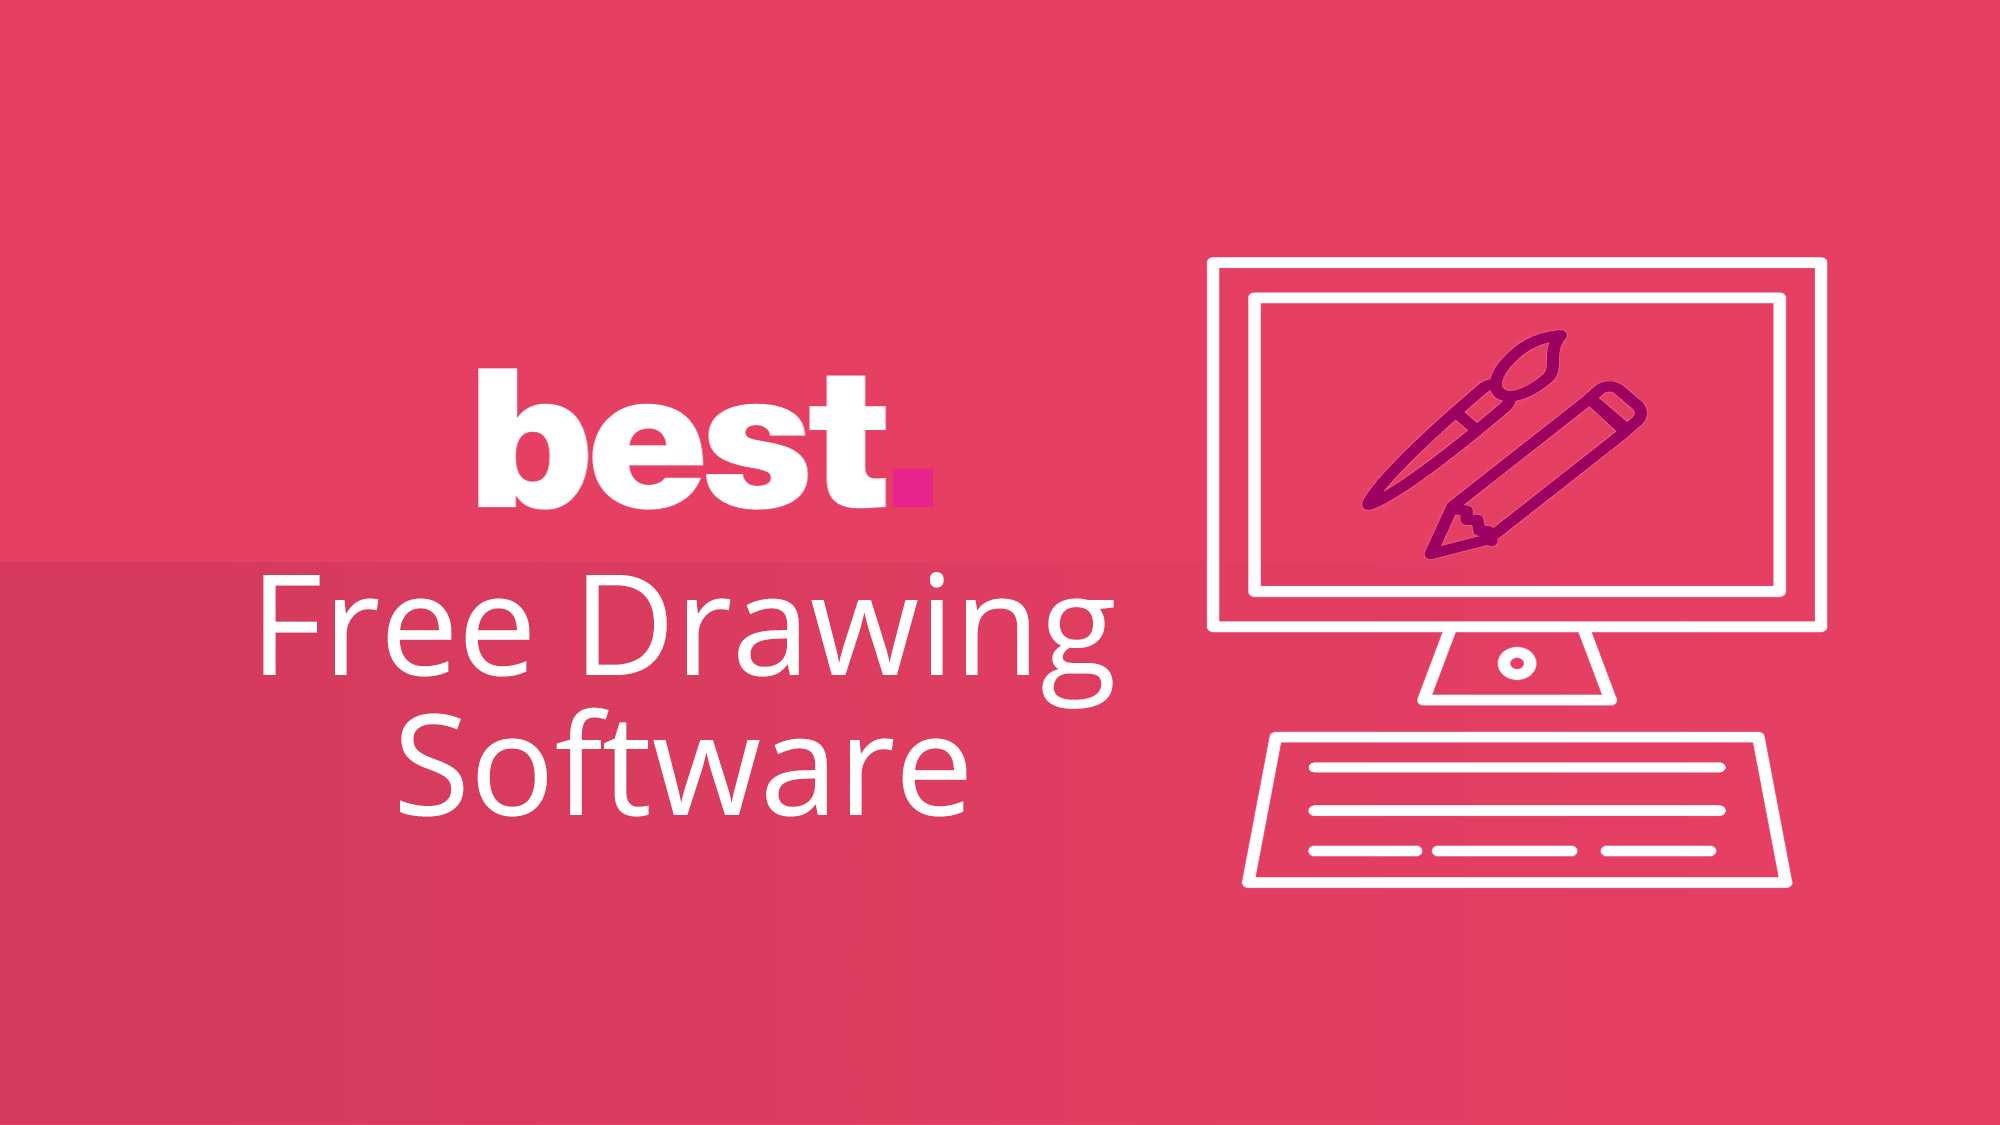 best free software for wacom tablets